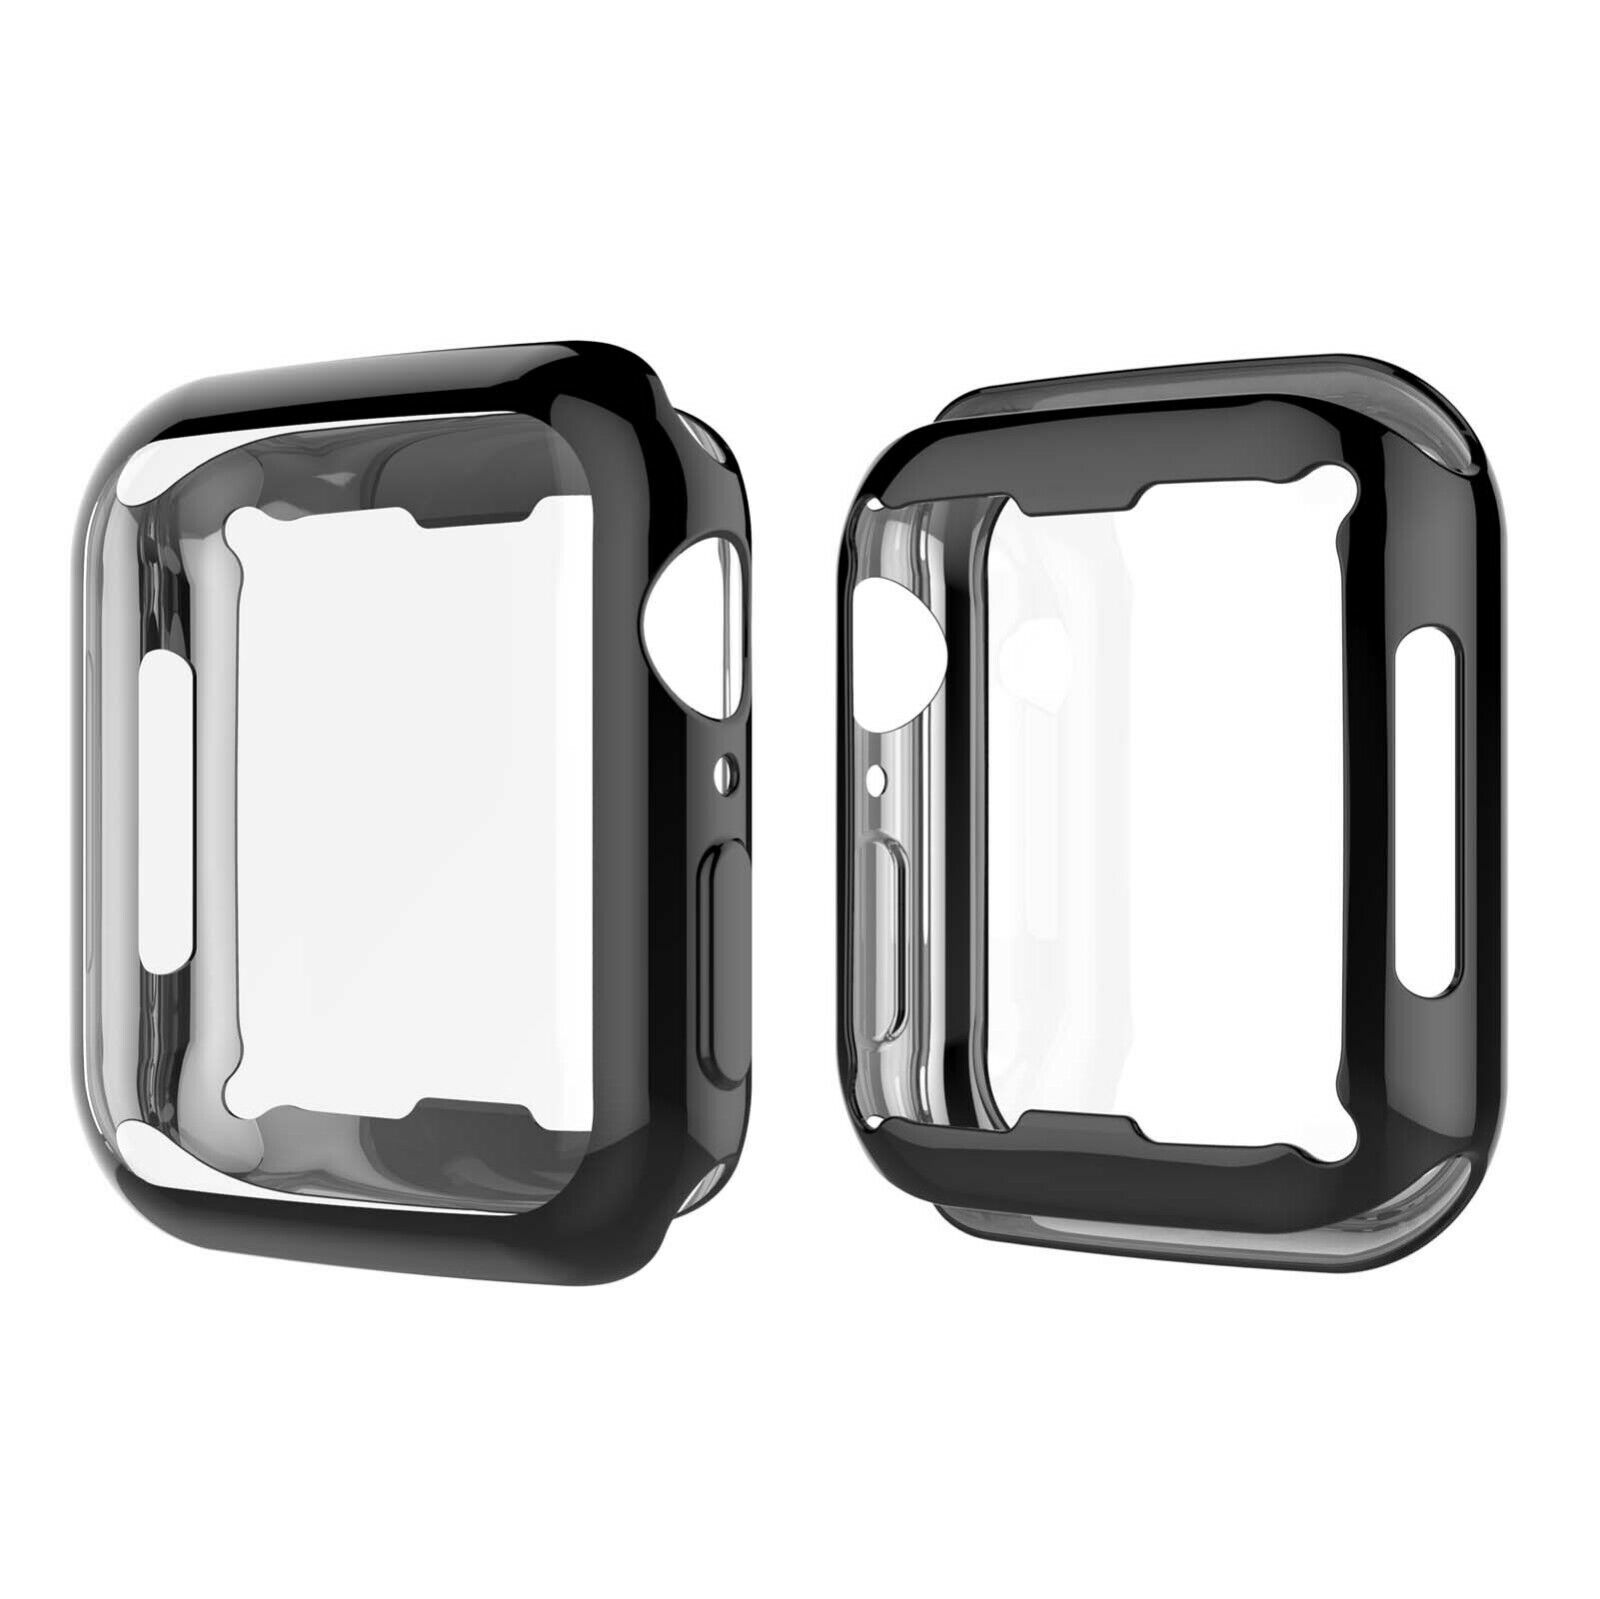 4Pcs Apple Watch Series 5 4 3 2 Case Screen Protector Full Body Protective Cover Cases, Covers & Skins